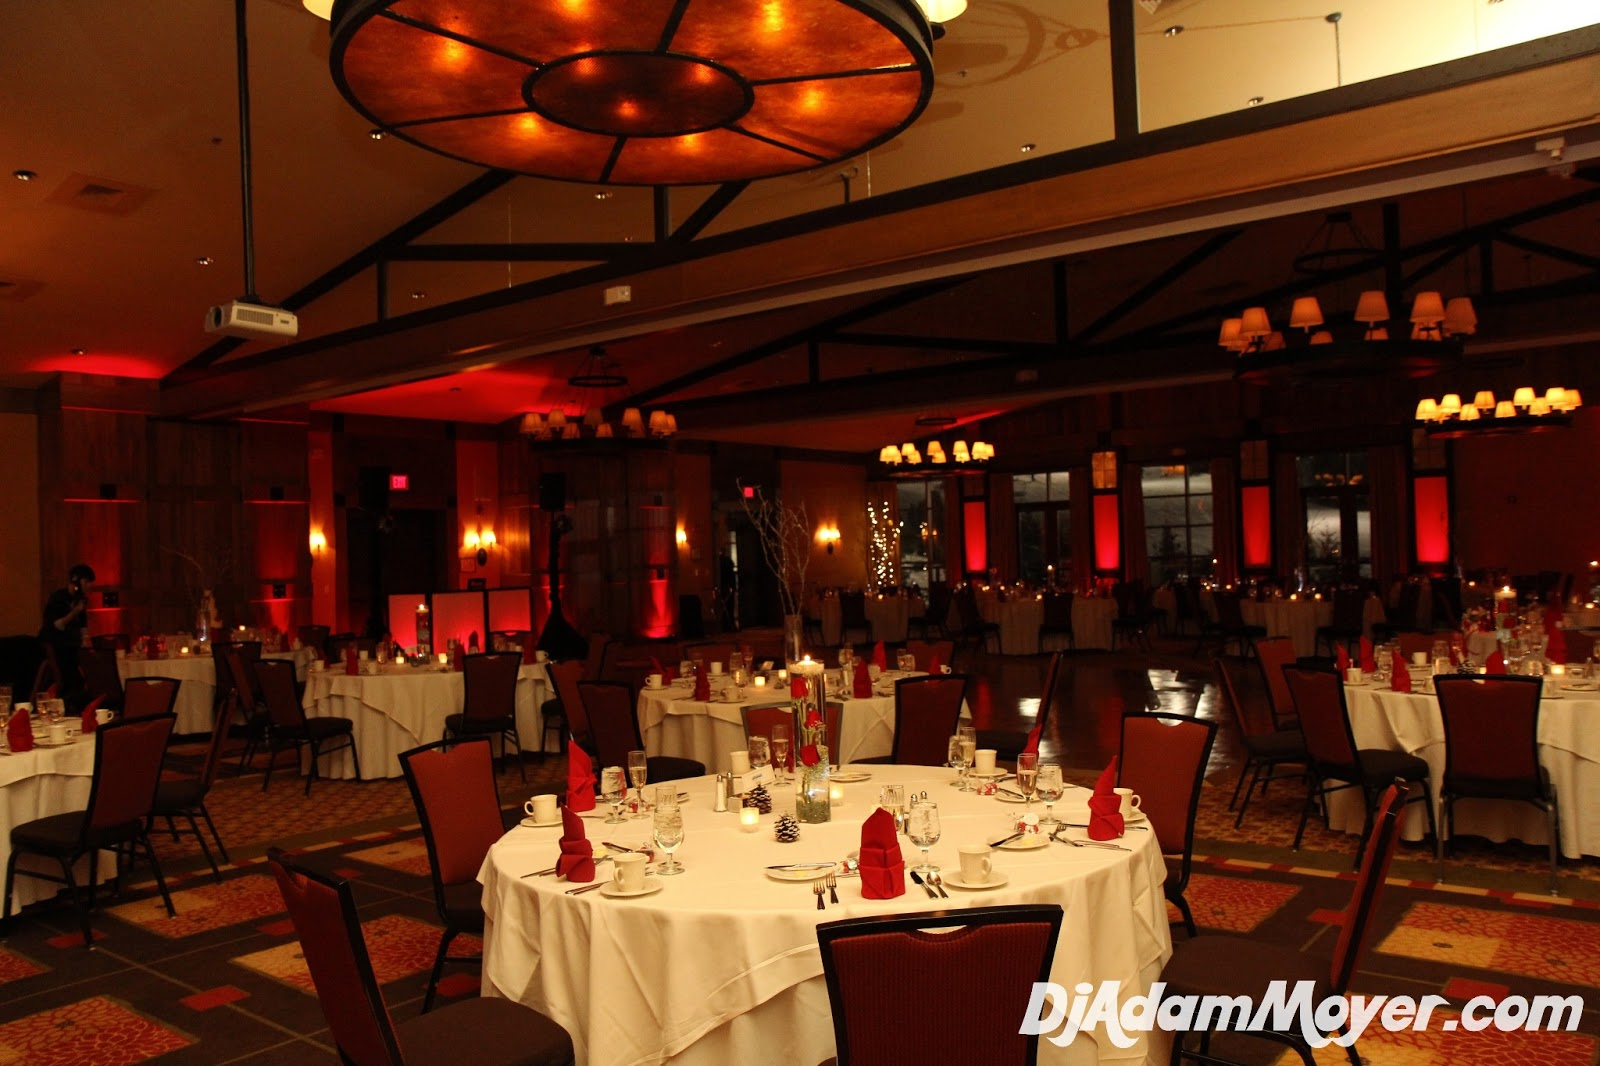 Melissa Jon S Special Day Began With A Short Ceremony In Portion Of The Mountain Ballroom I Provided Red Led Uplighting Highlighting Their Wedding